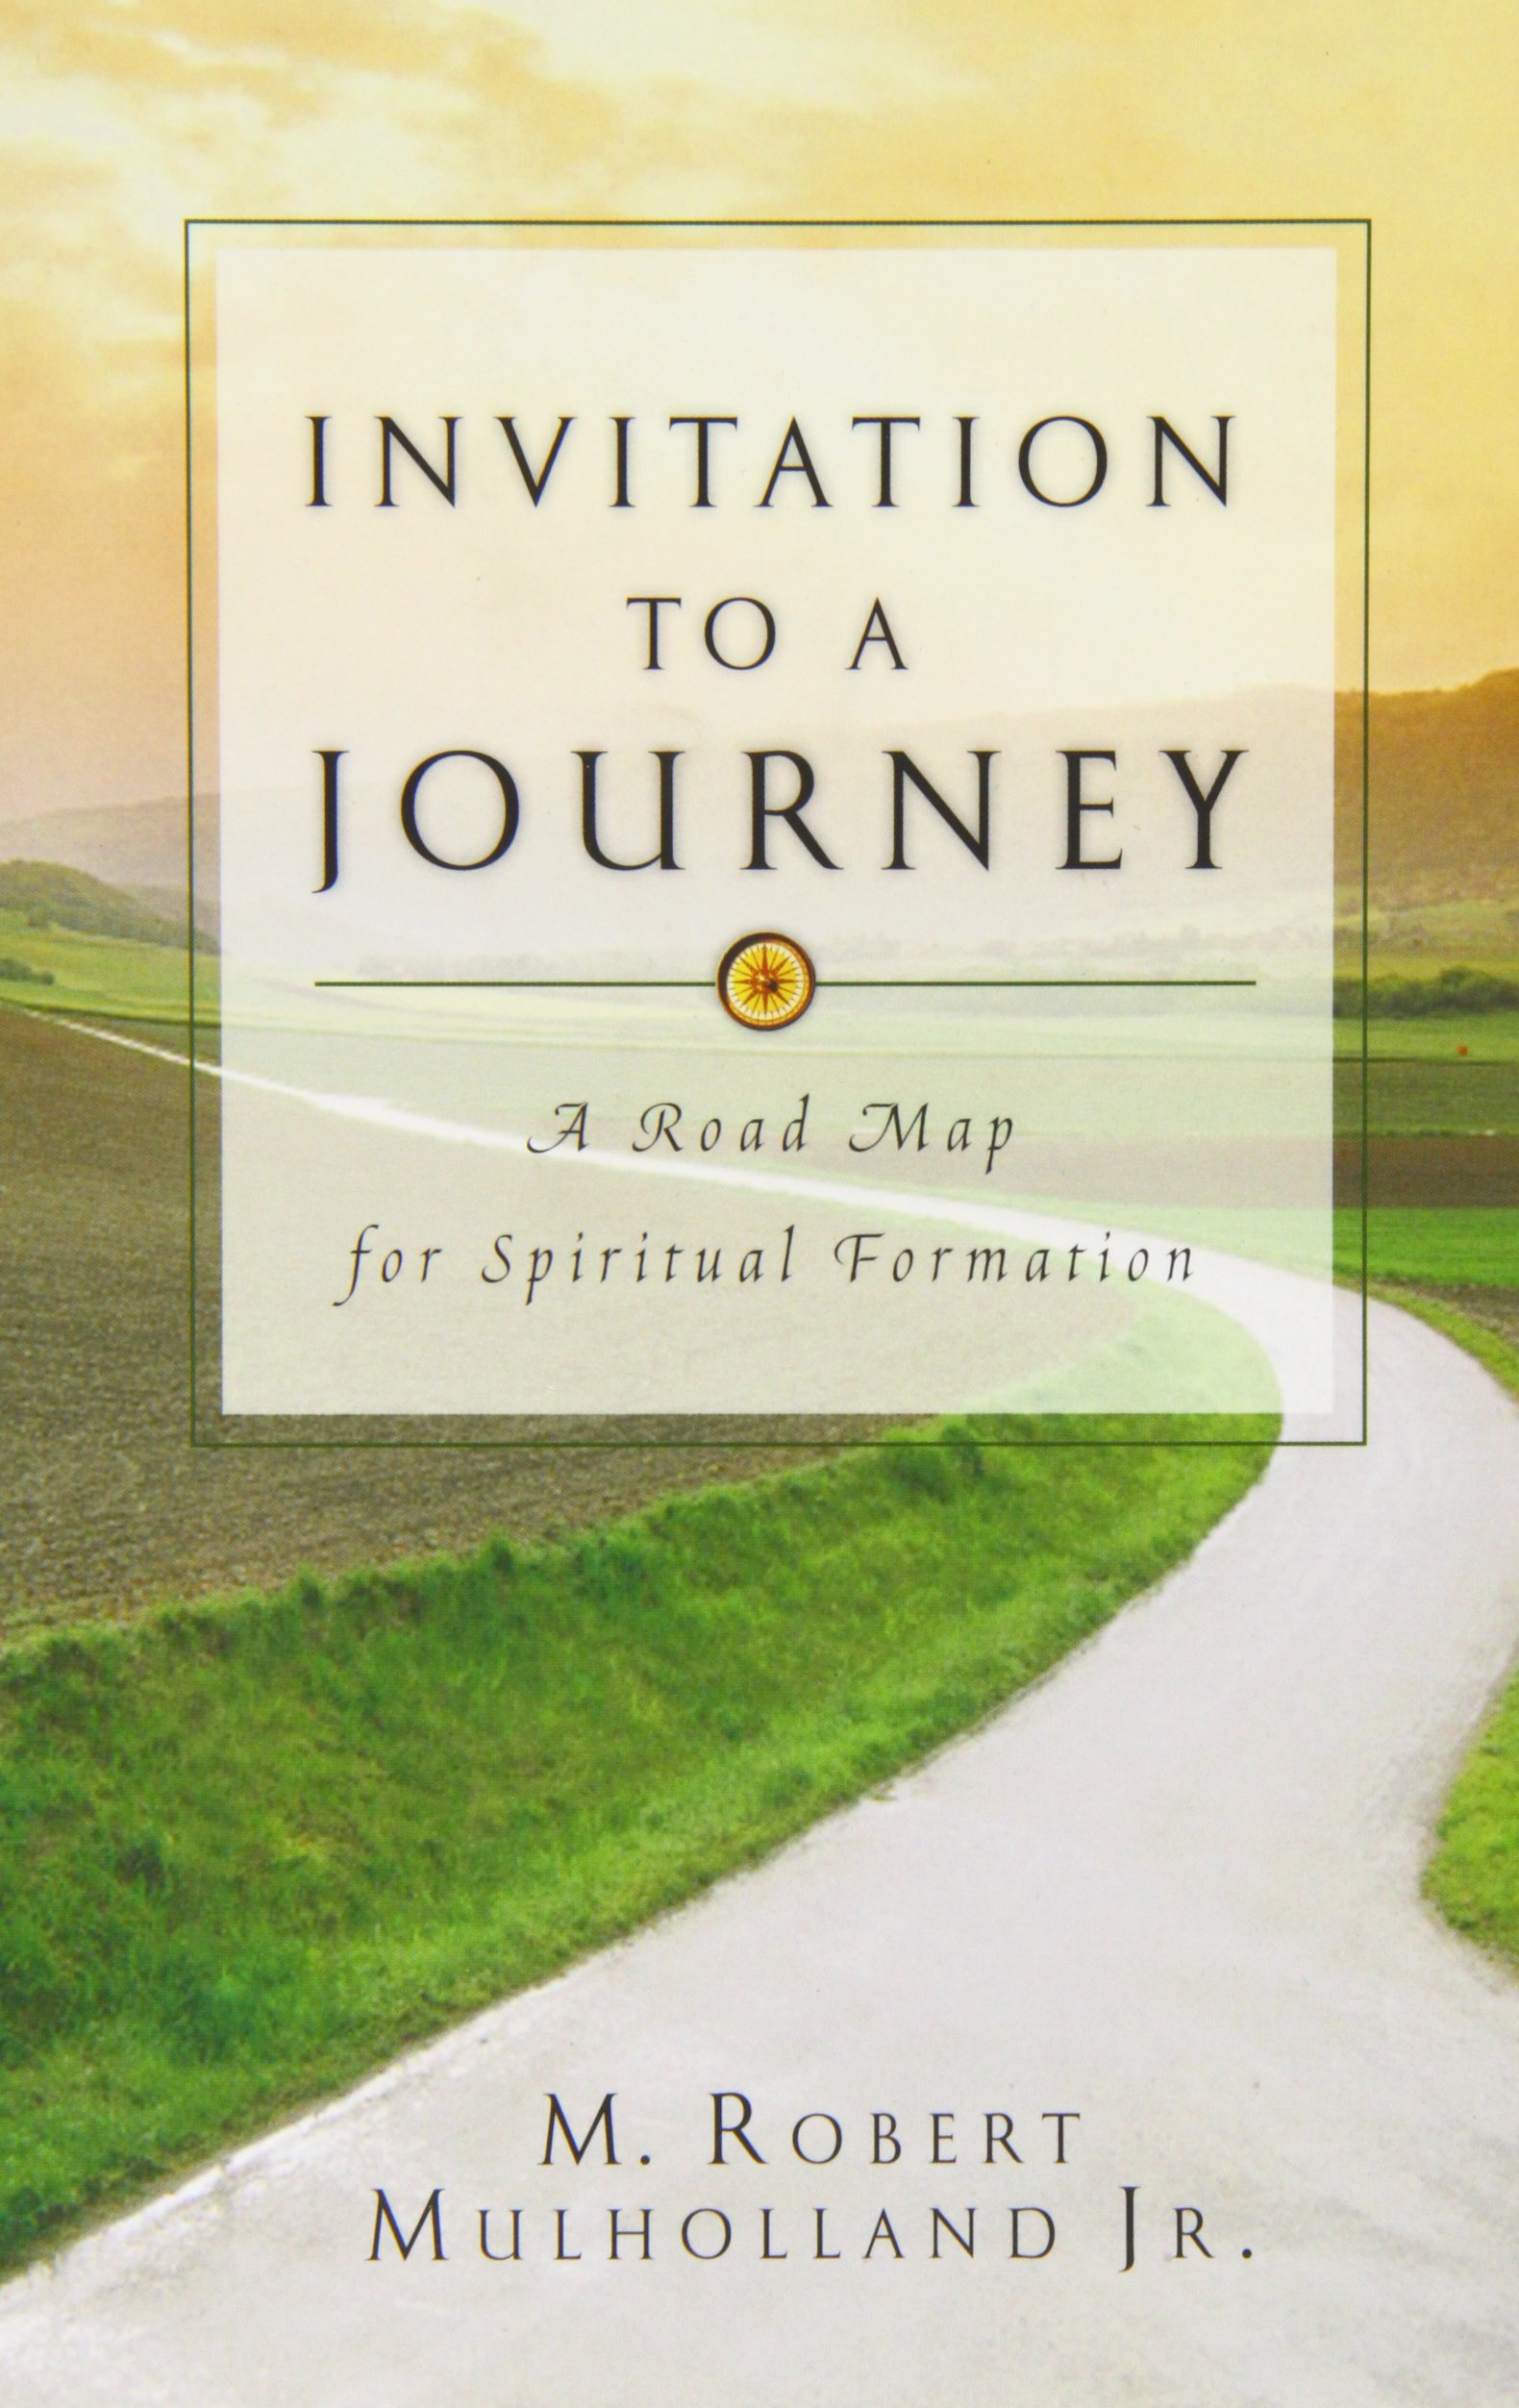 amazon invitation to a journey a road map for spiritual formation